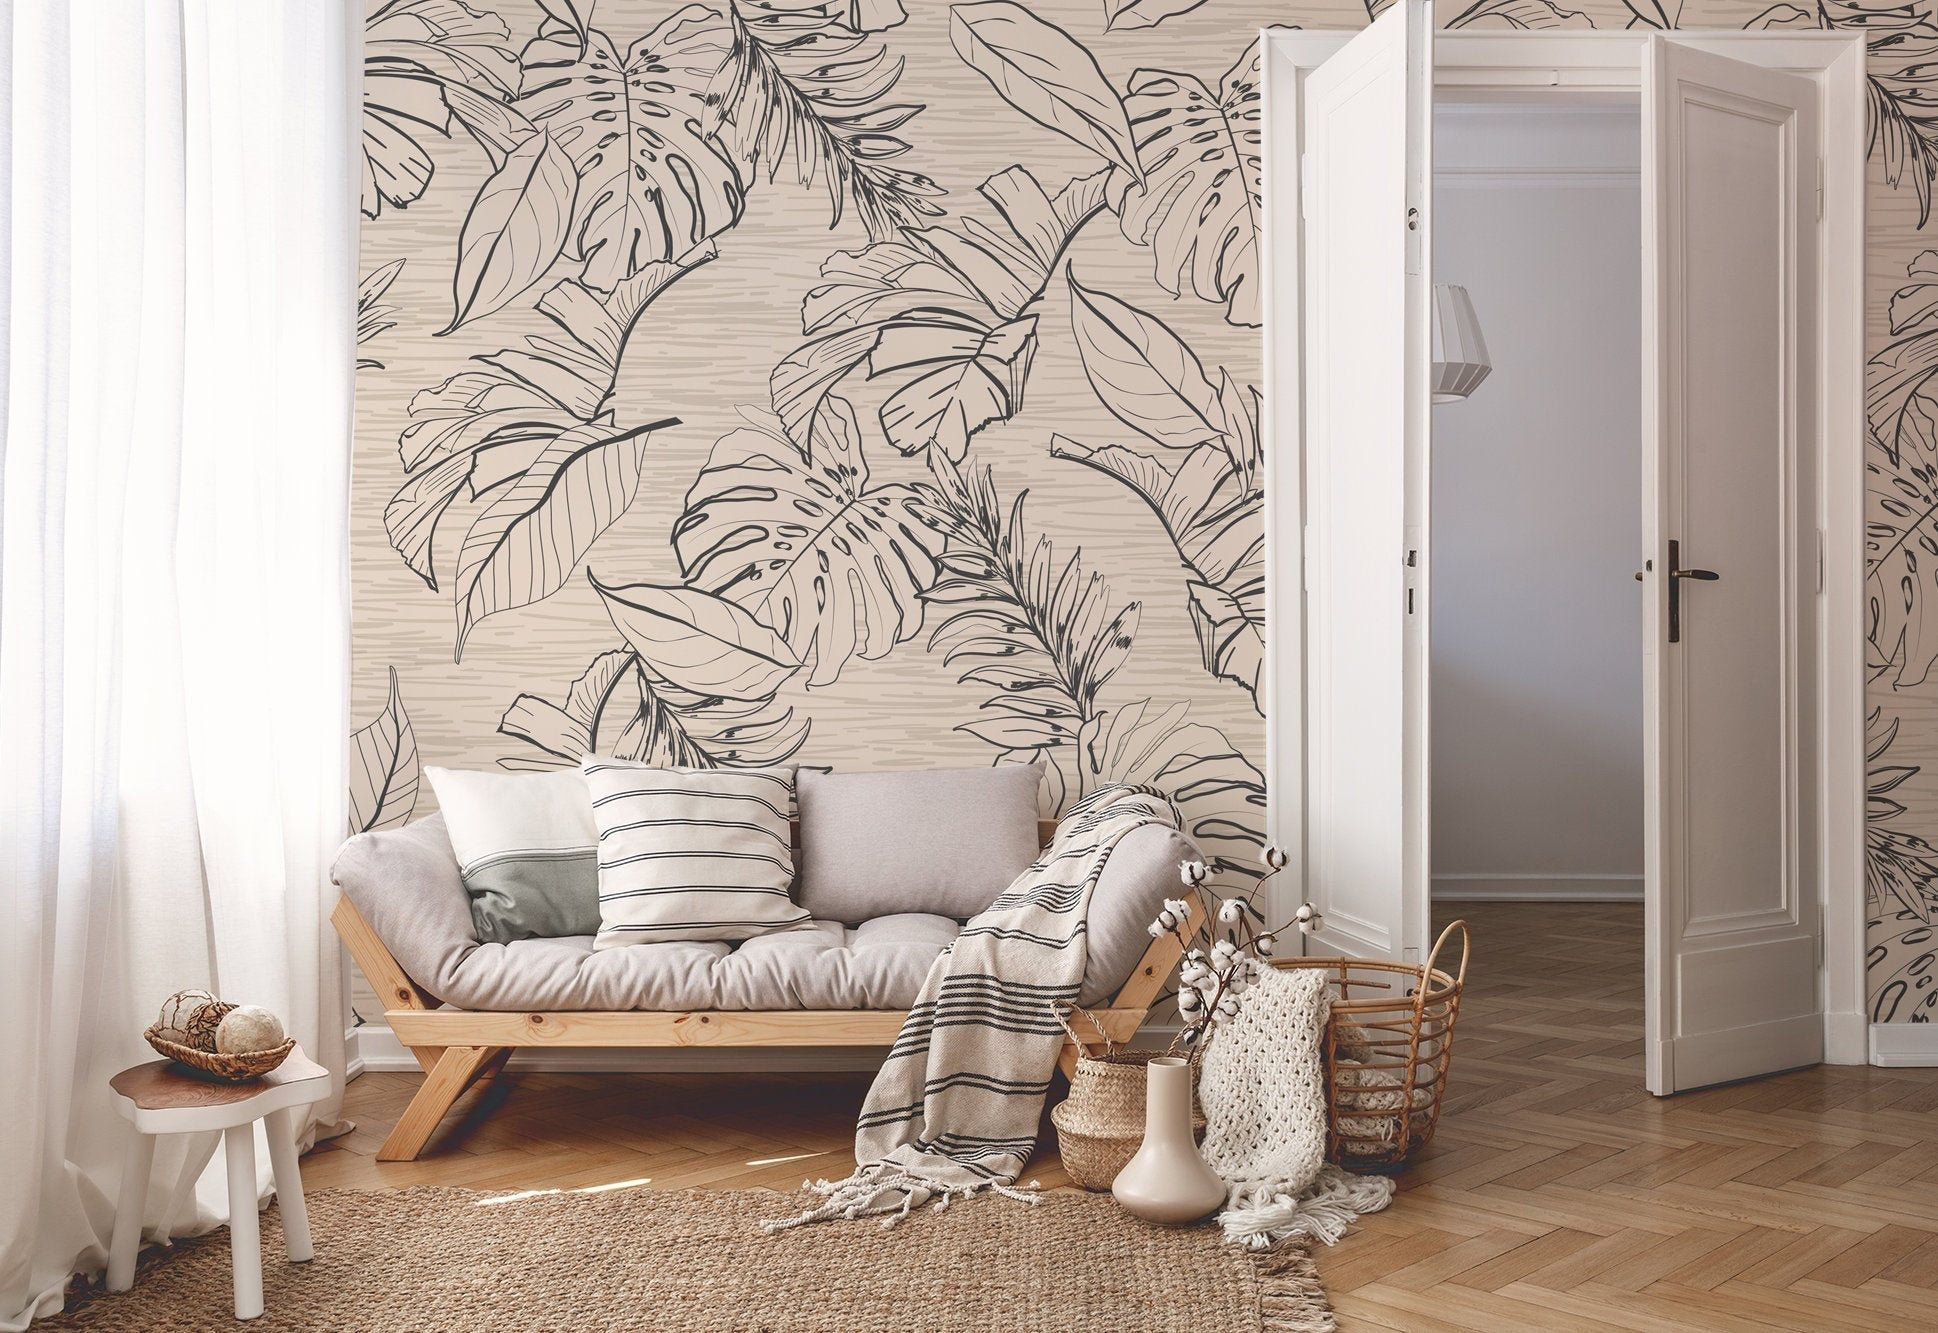 Answering Your Faqs About Removable Wallpaper The Homes I Have Made